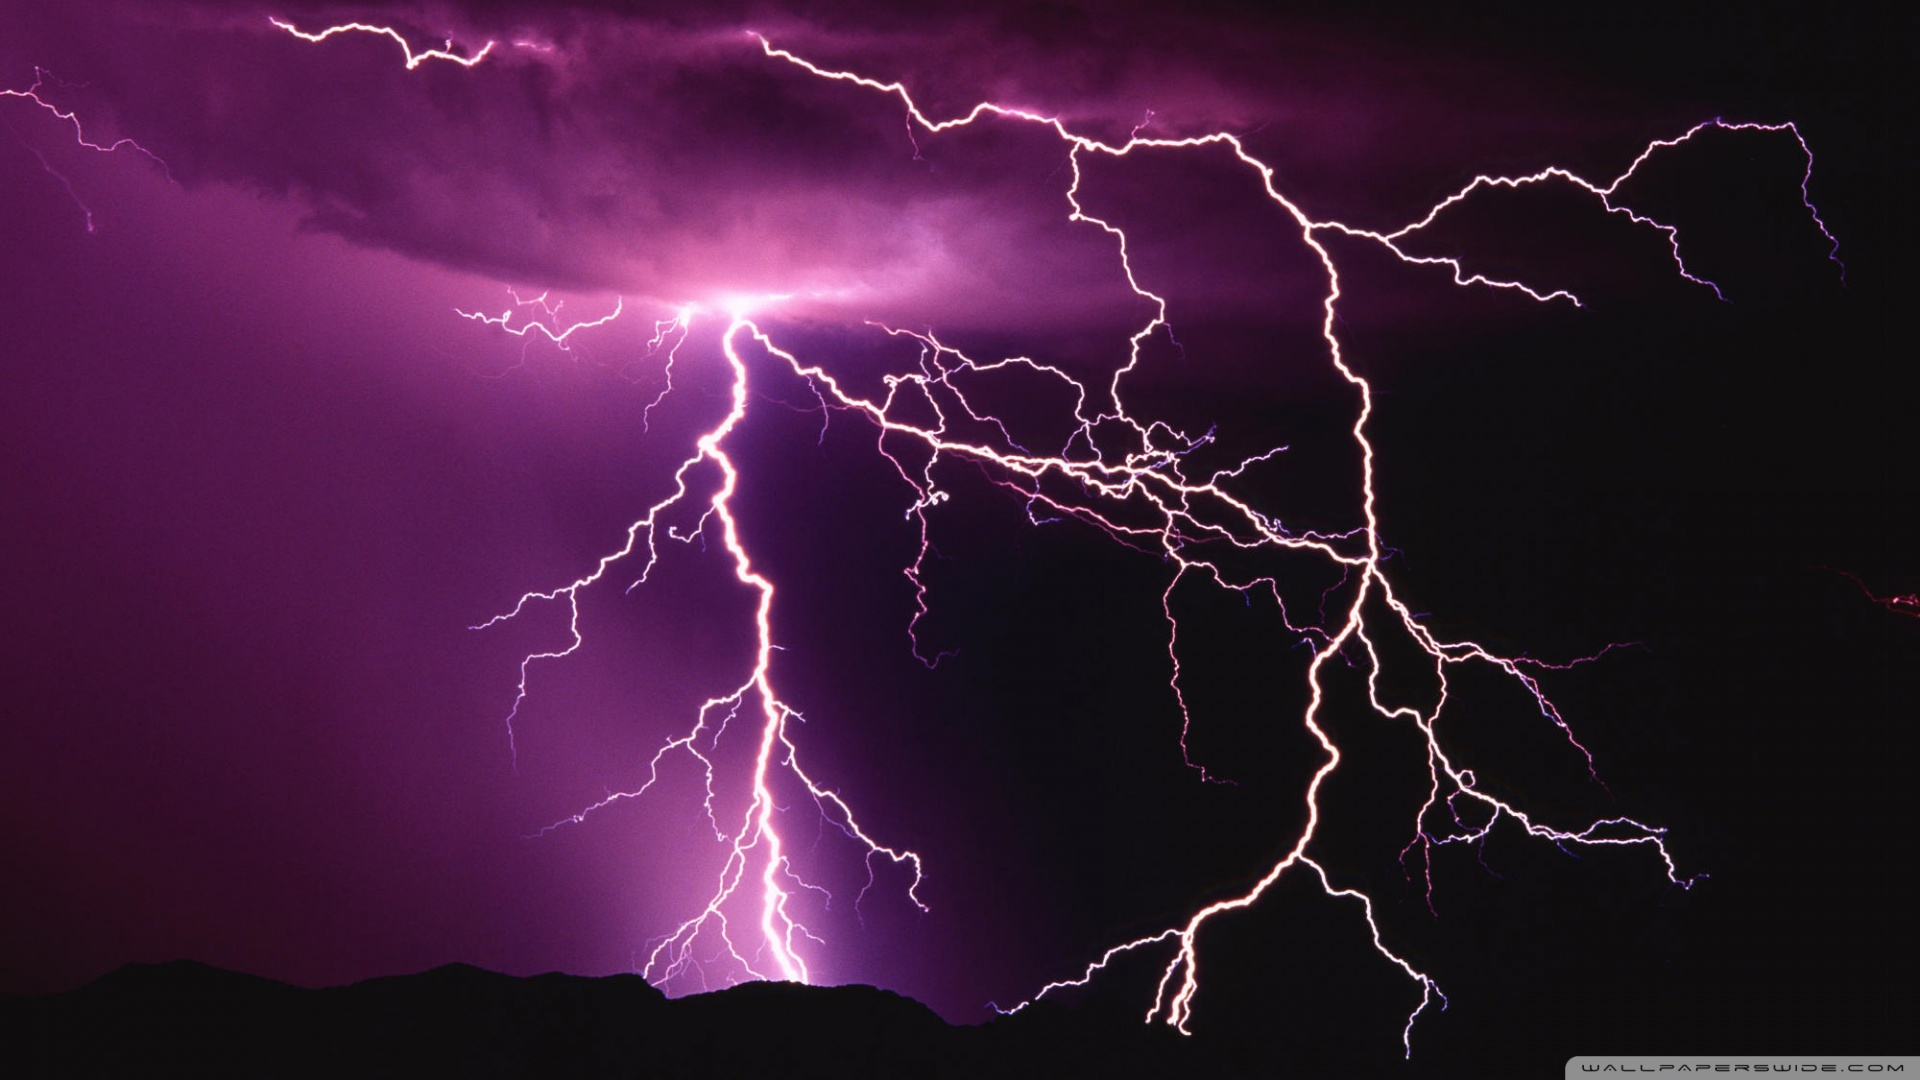 thunderstorm wallpaper HD 1920x1080